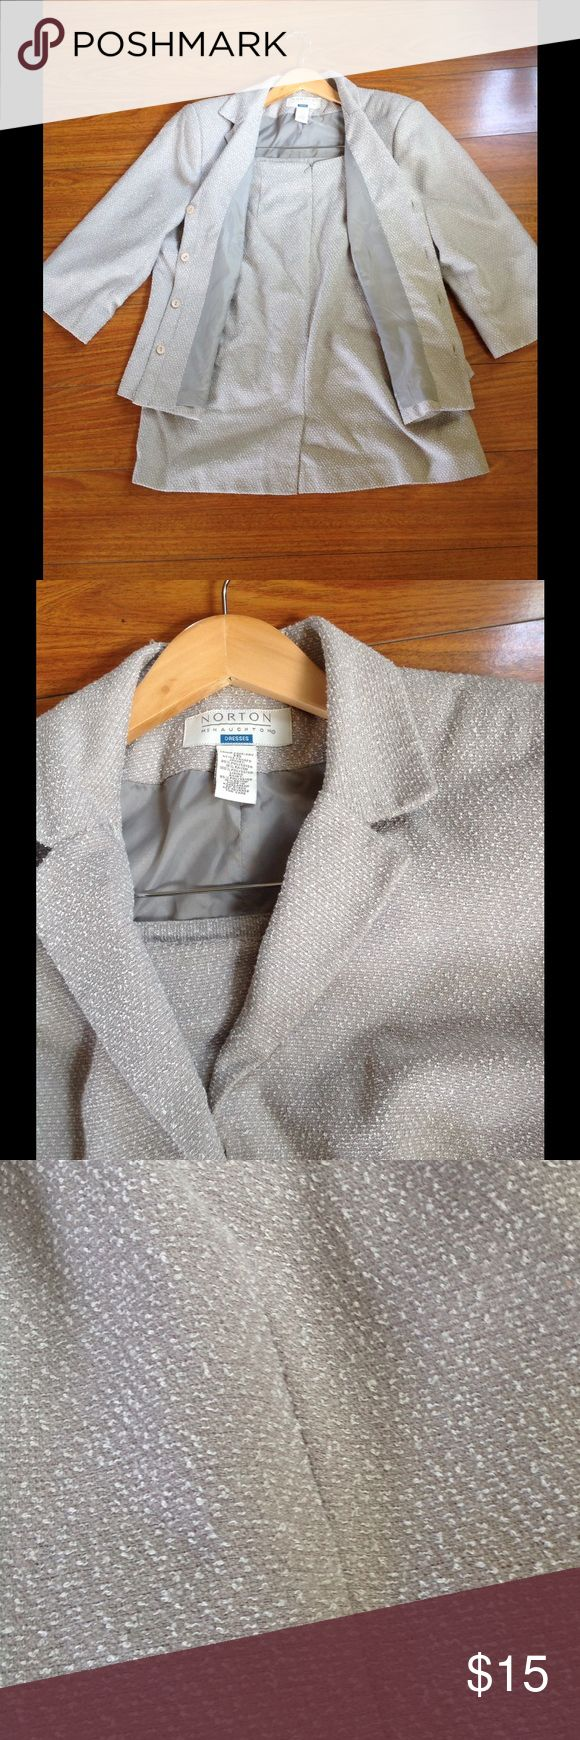 Norton light gray women's skirt suit Skirt suit, jacket is fully lined. Please look at 3rd picture for patter . In great condition. My mother-in-law-used it a few times Norton Skirts Skirt Sets